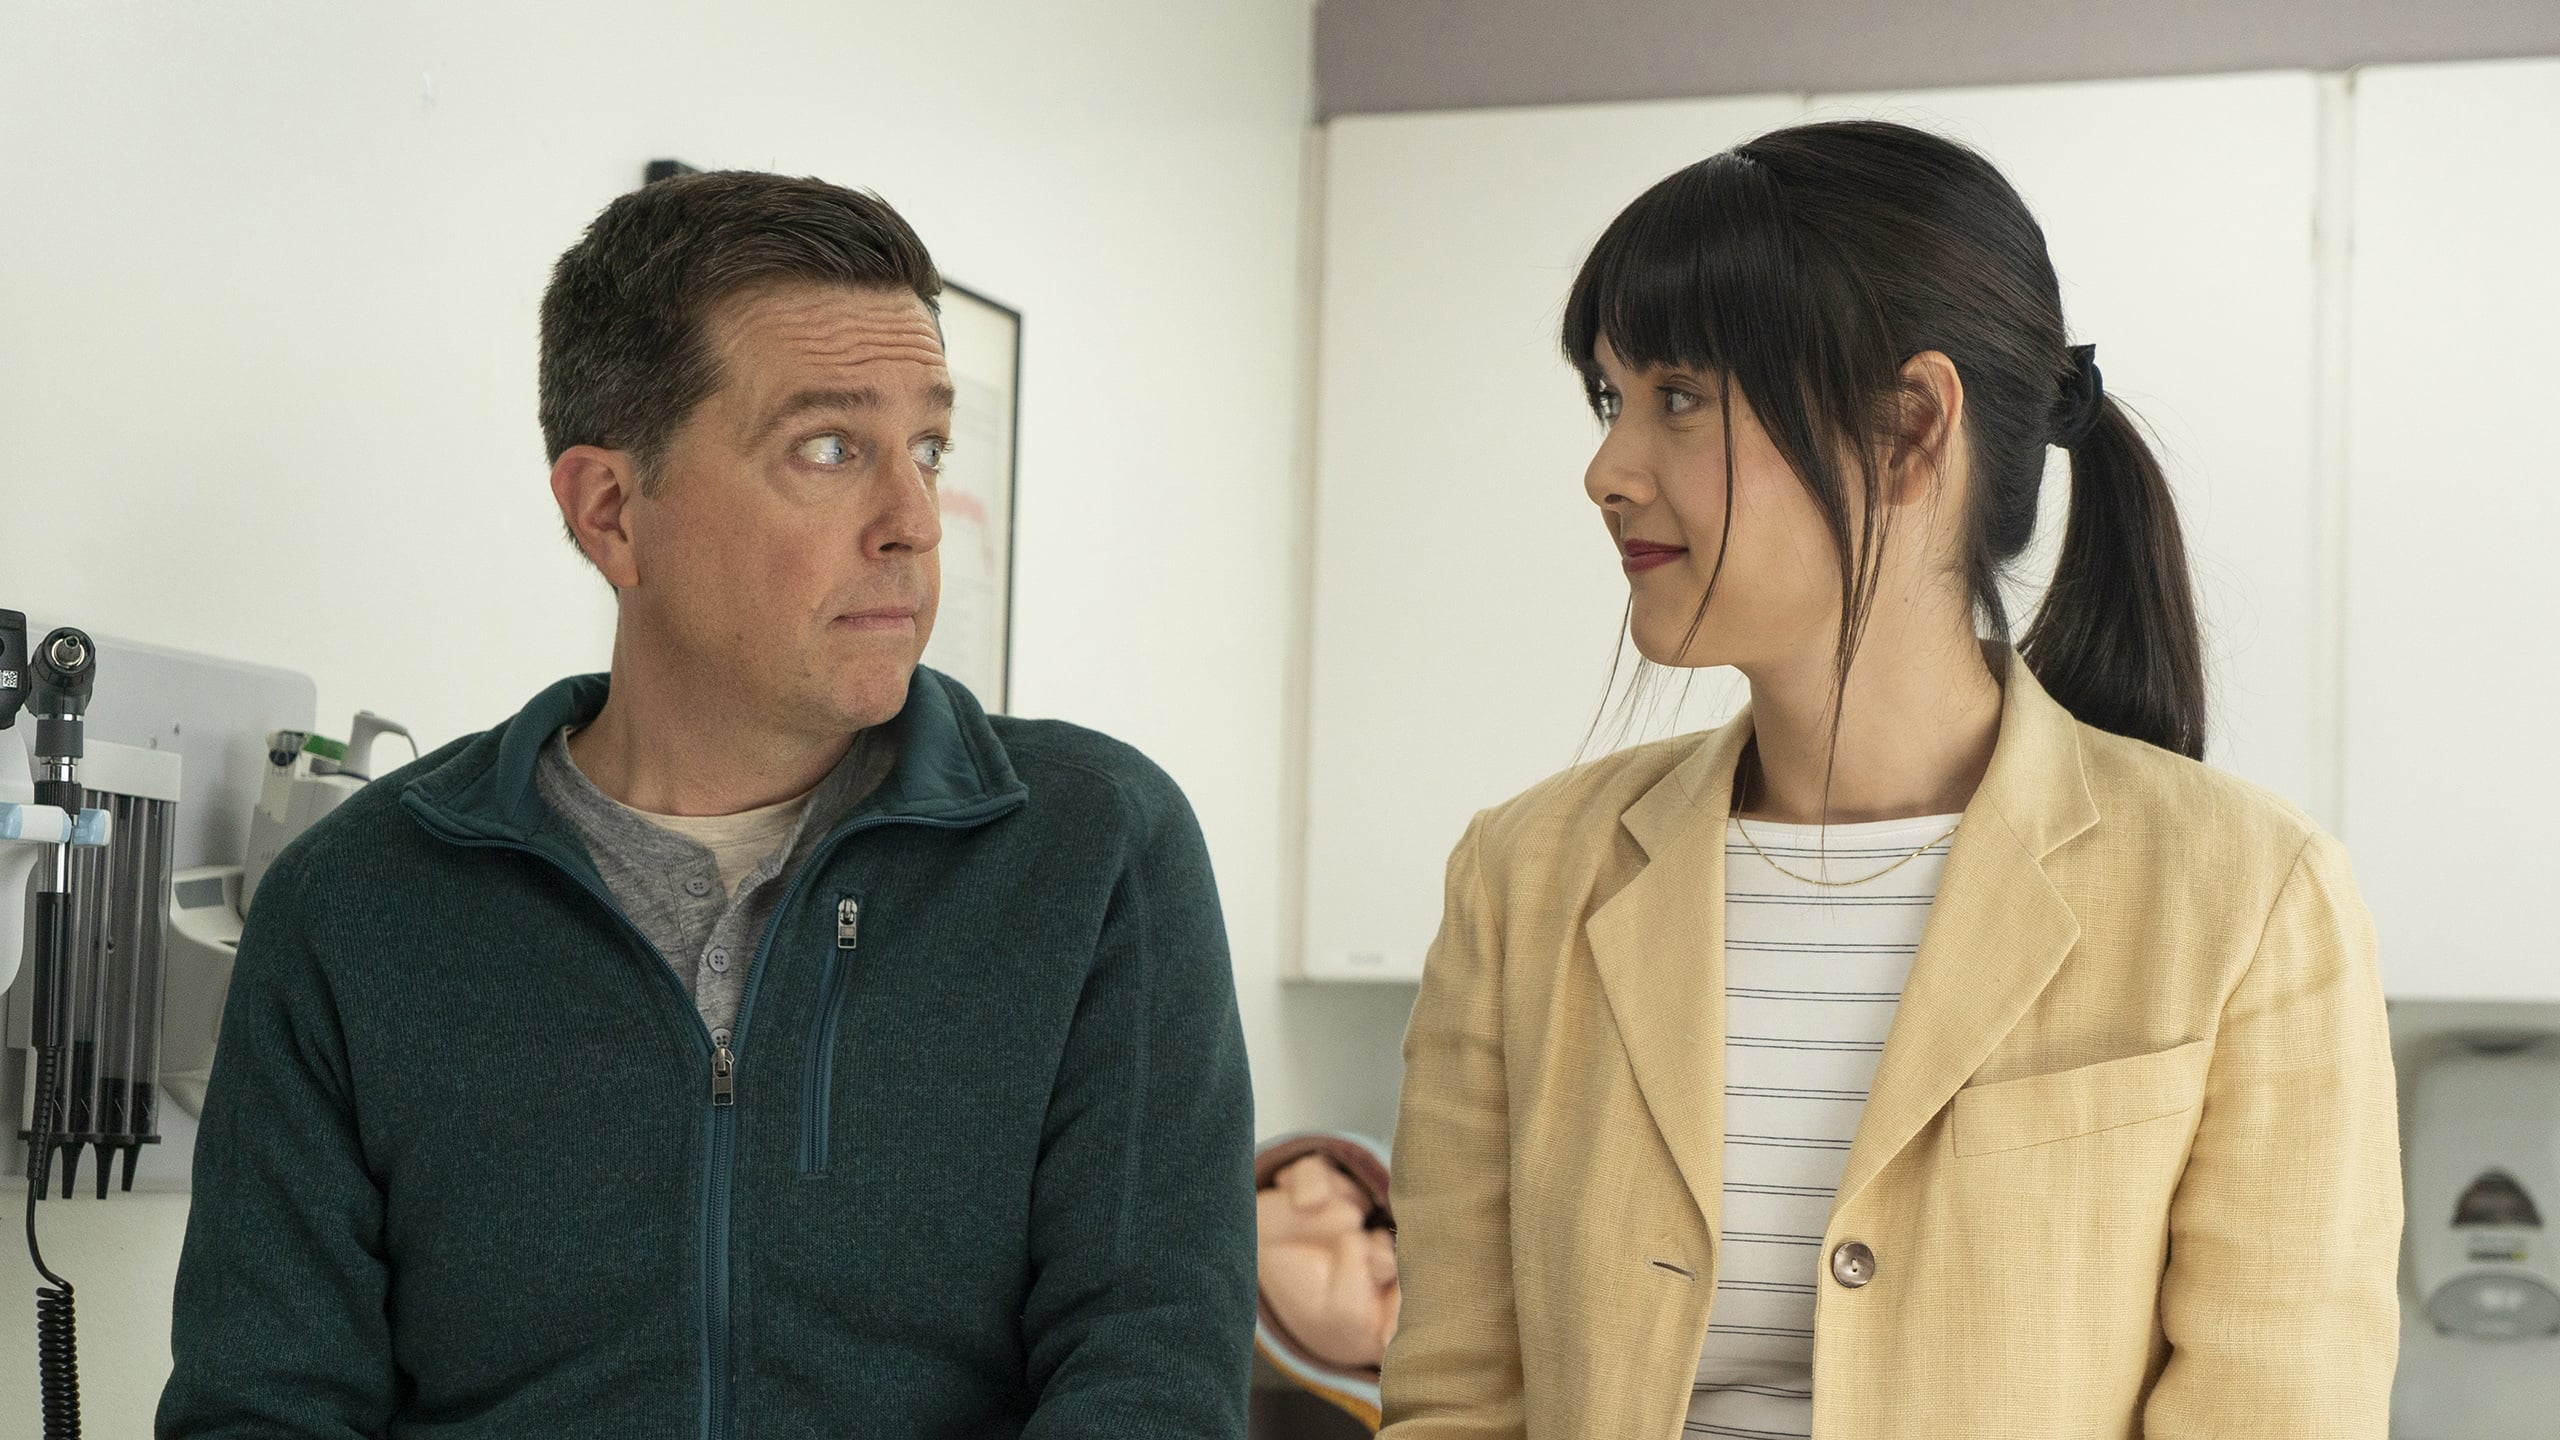 Matt (Ed Helms) chooses Anna (Patti Harrison) as a surrogate for the child he hopes to father